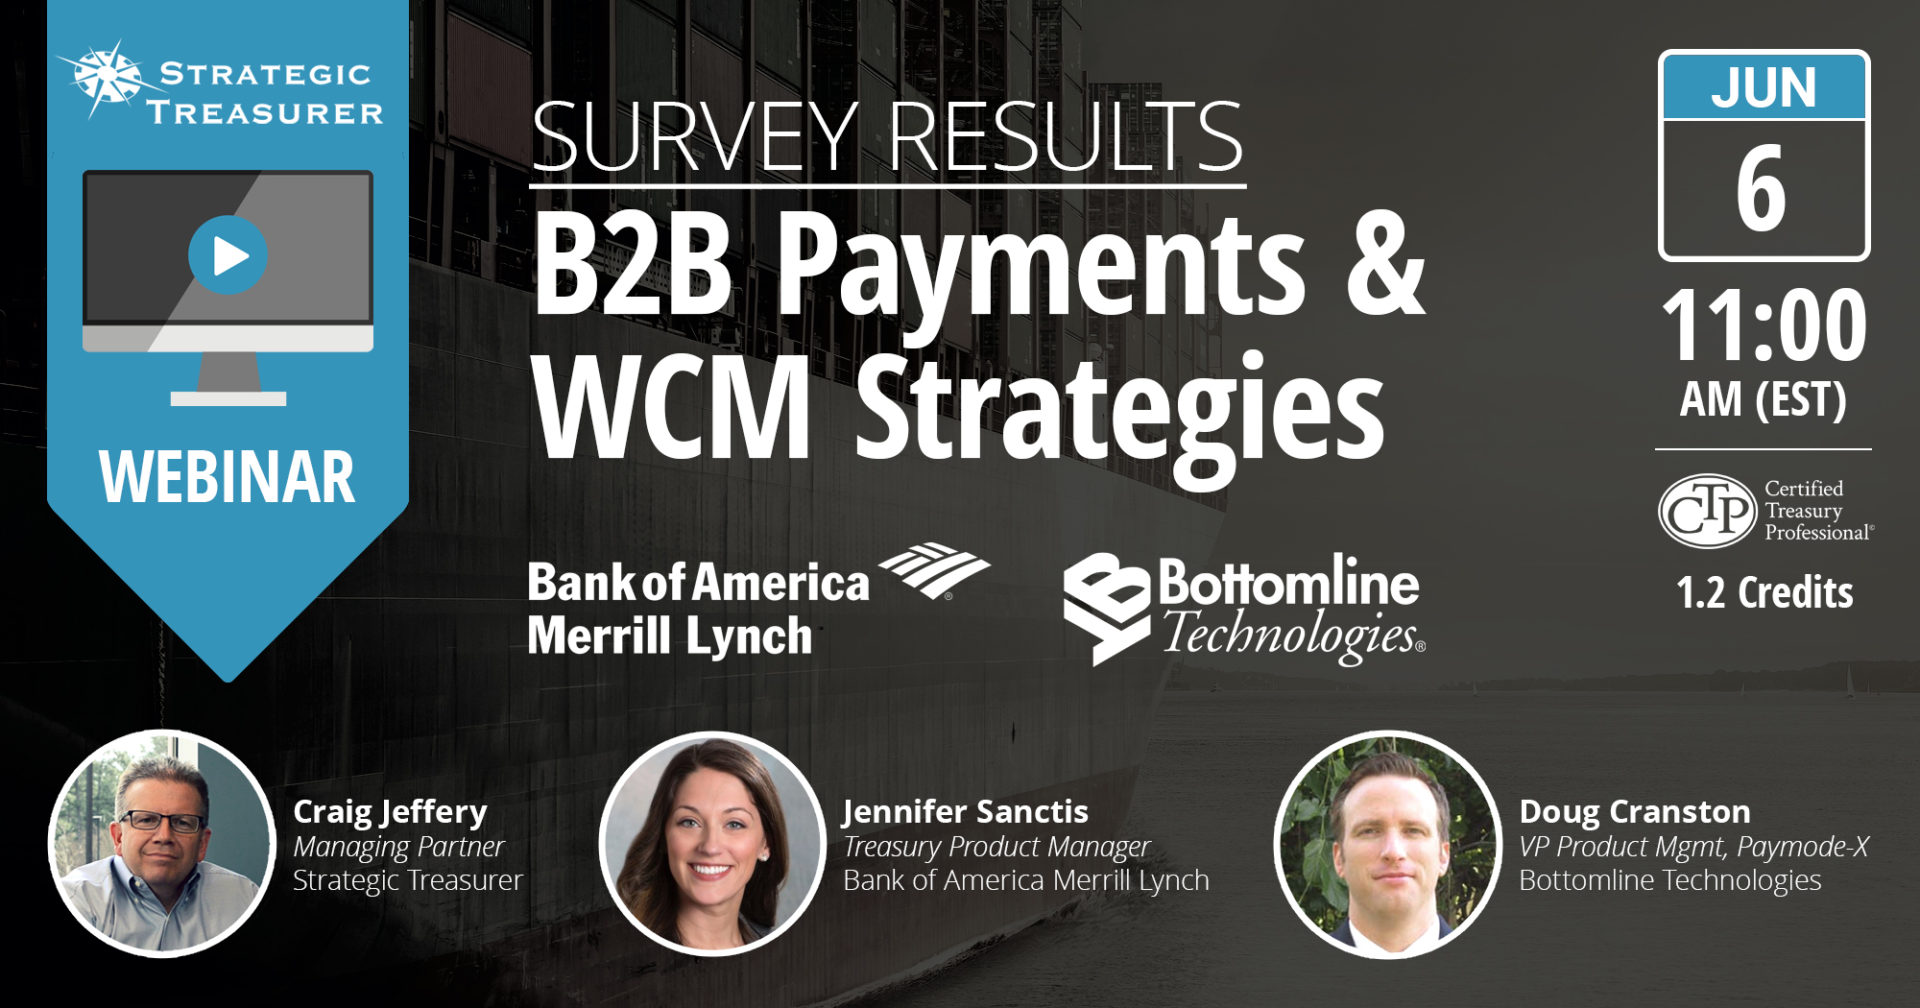 2017 B2B Payments & Working Capital Management Survey Results Webinar